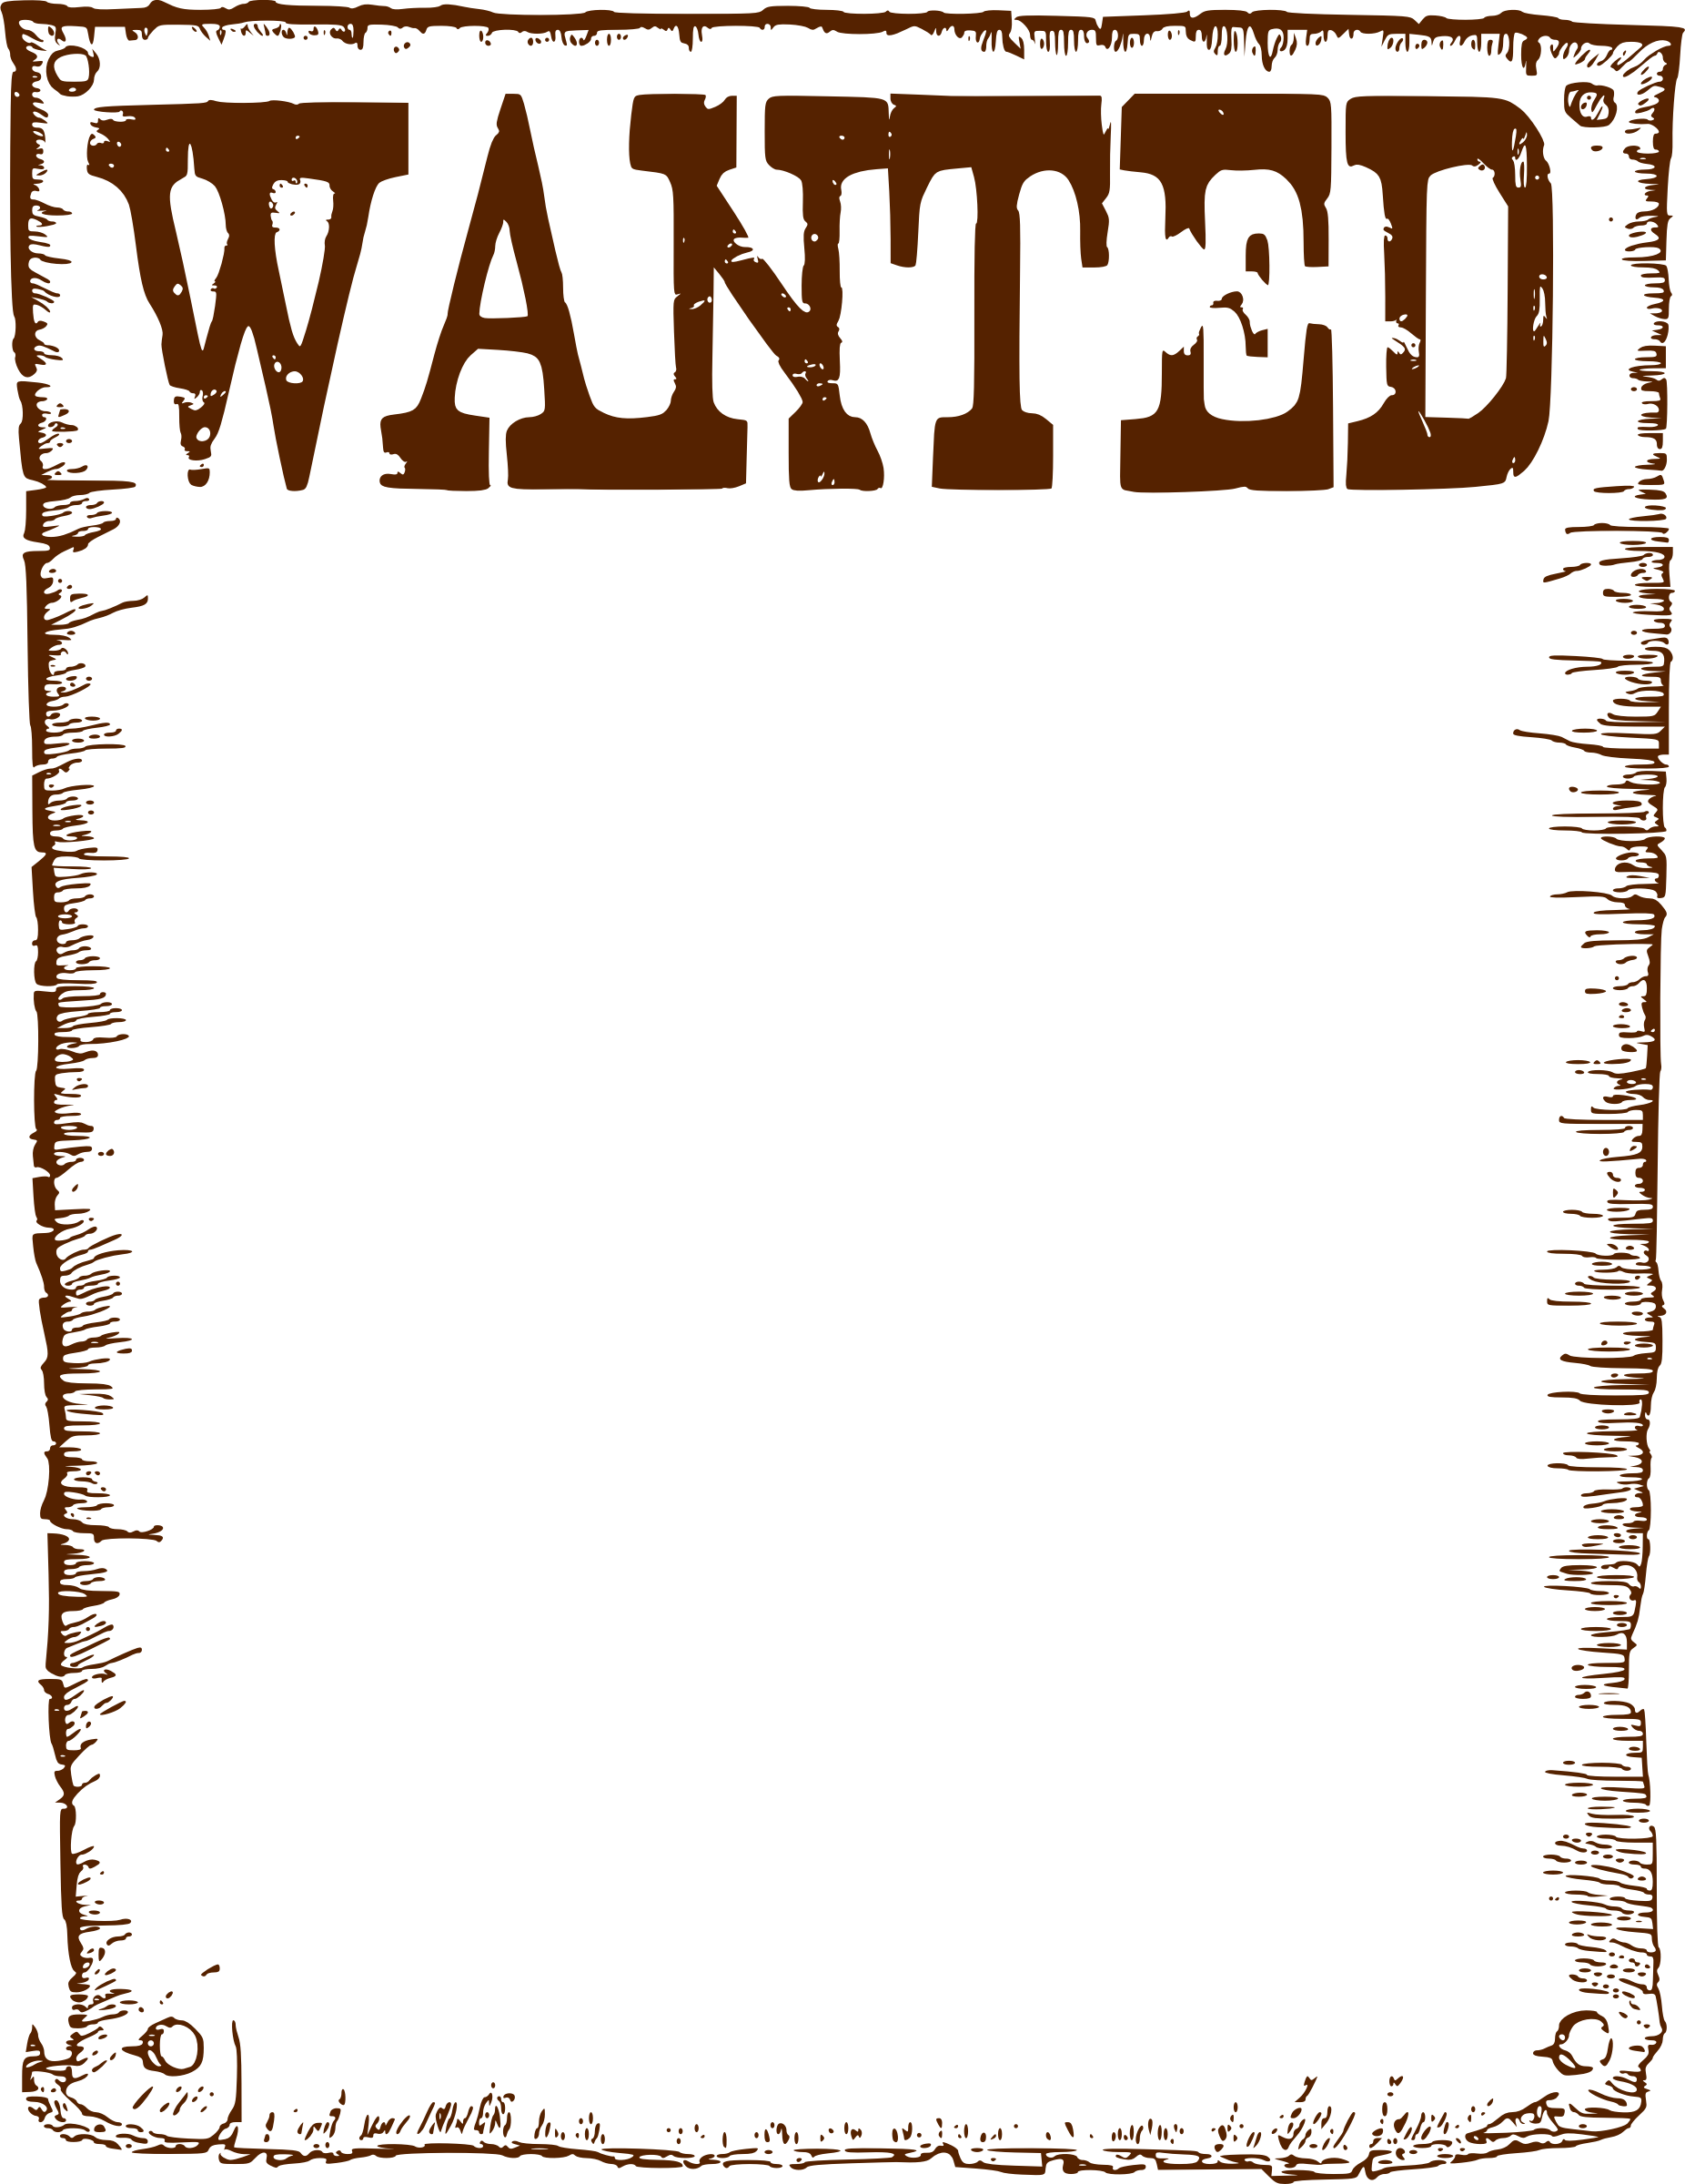 Western wanted sign template. Landscape clipart wild west